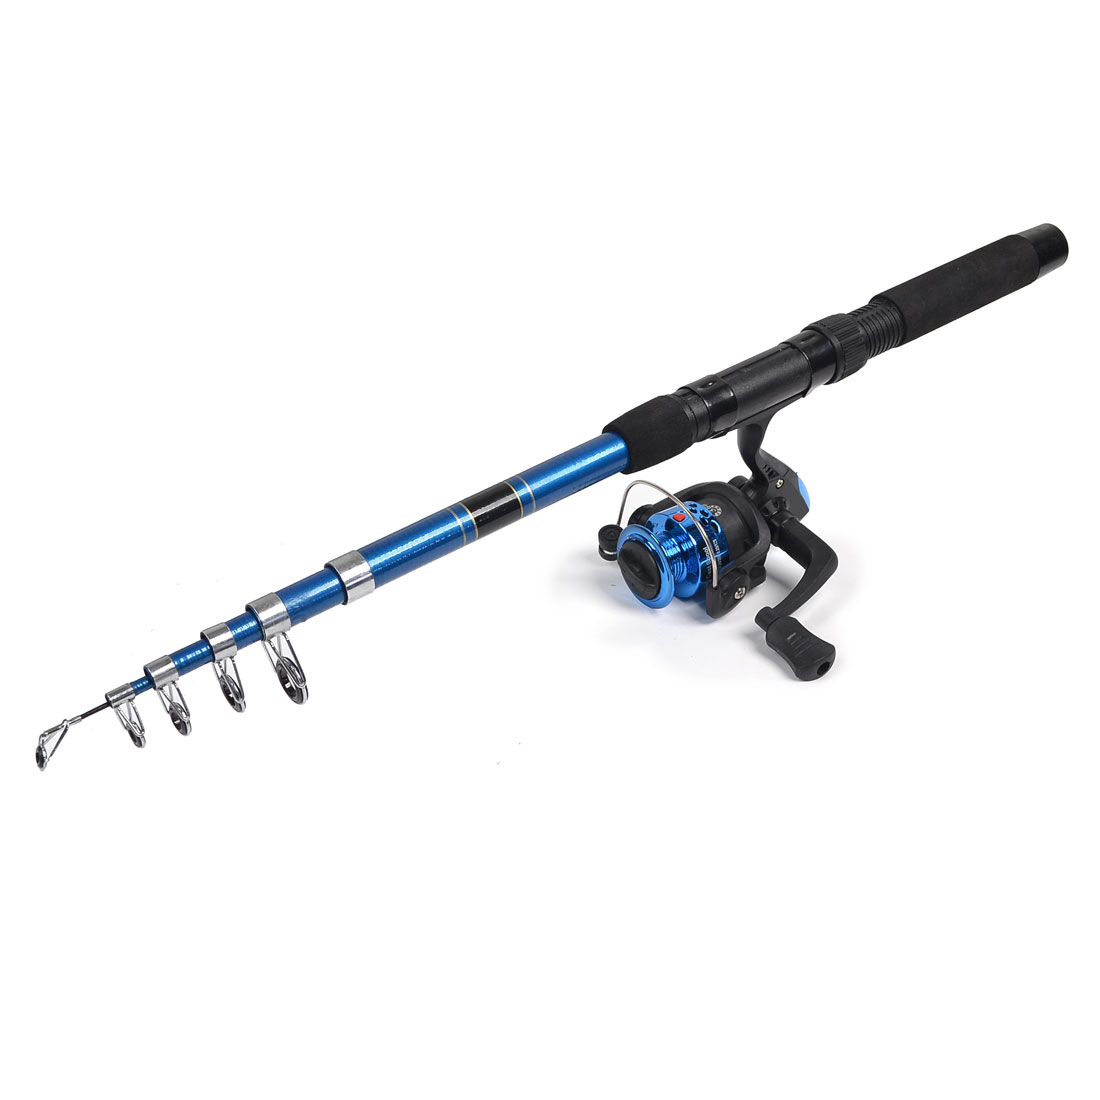 Foam Coated Handle Blue Telescopic Fishing Rod 2M 6.56Ft w 5.2:1 Spinning Reel by